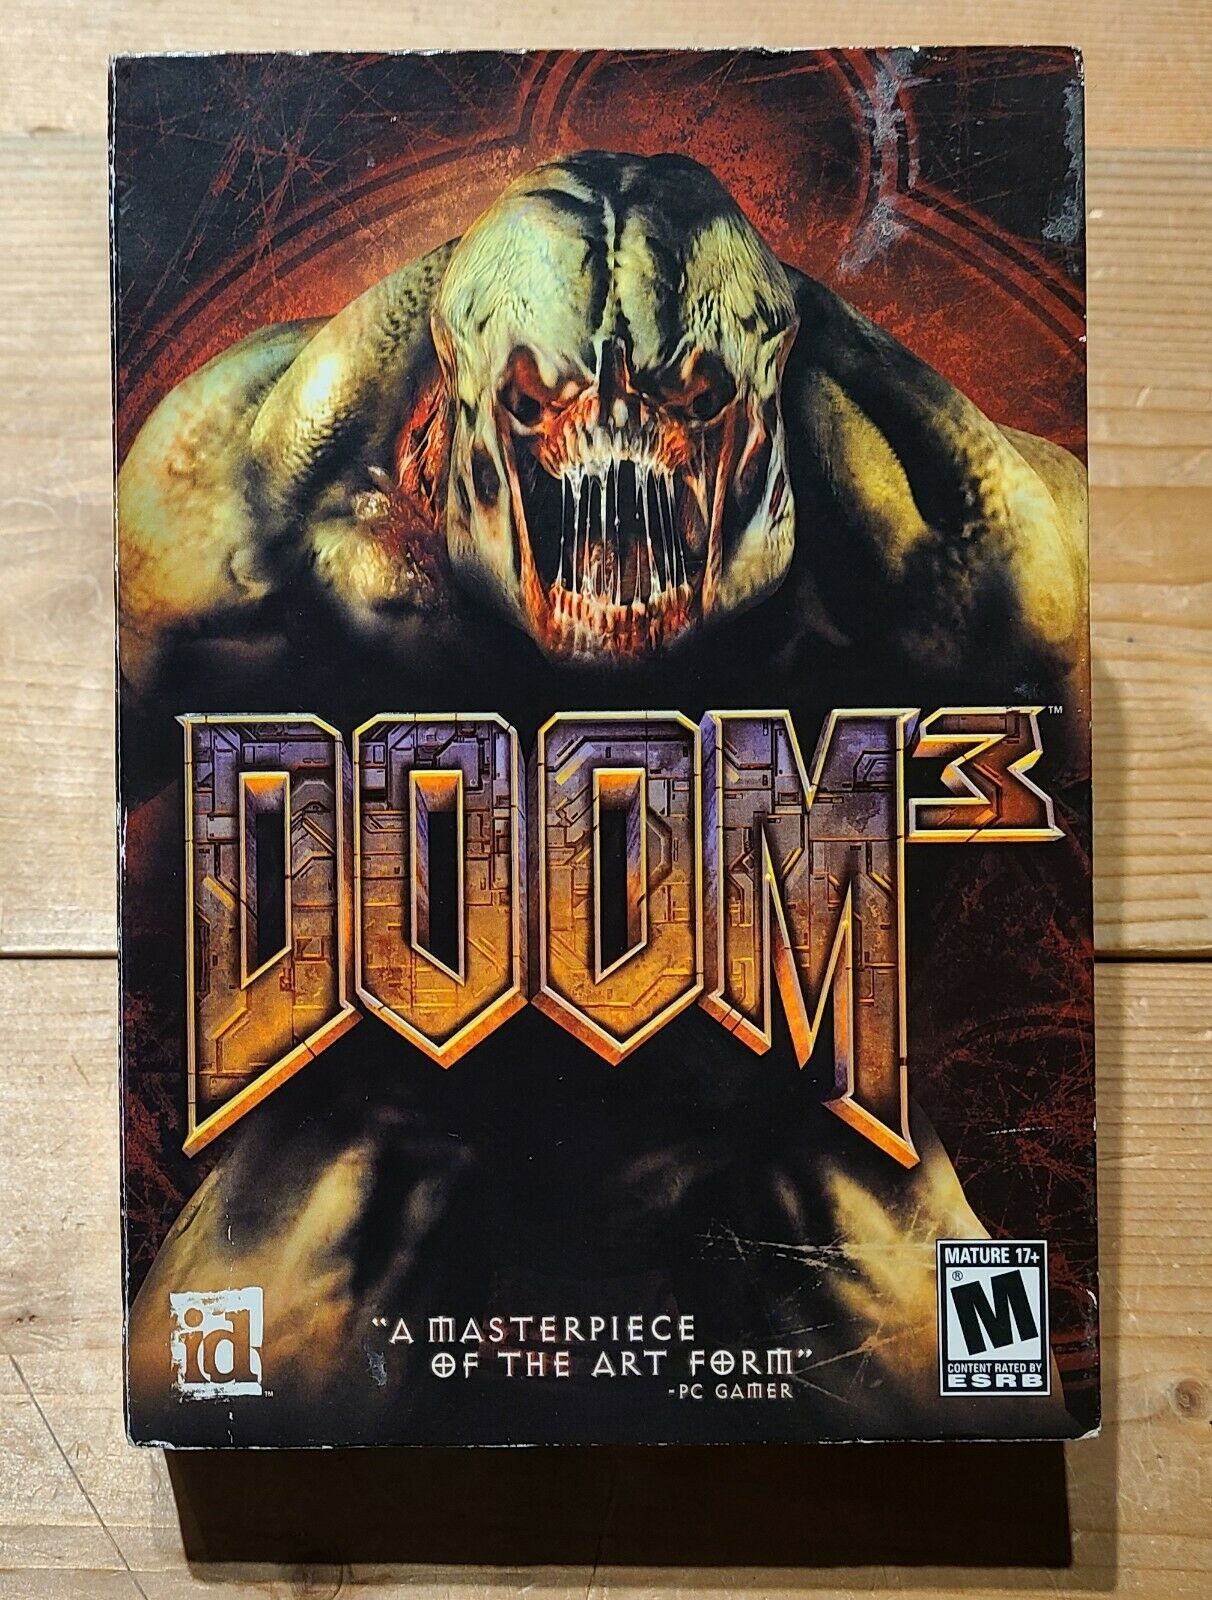 Computer Games - Doom 3 (PC, 2004) Big Box PC Computer Video Game, Complete!